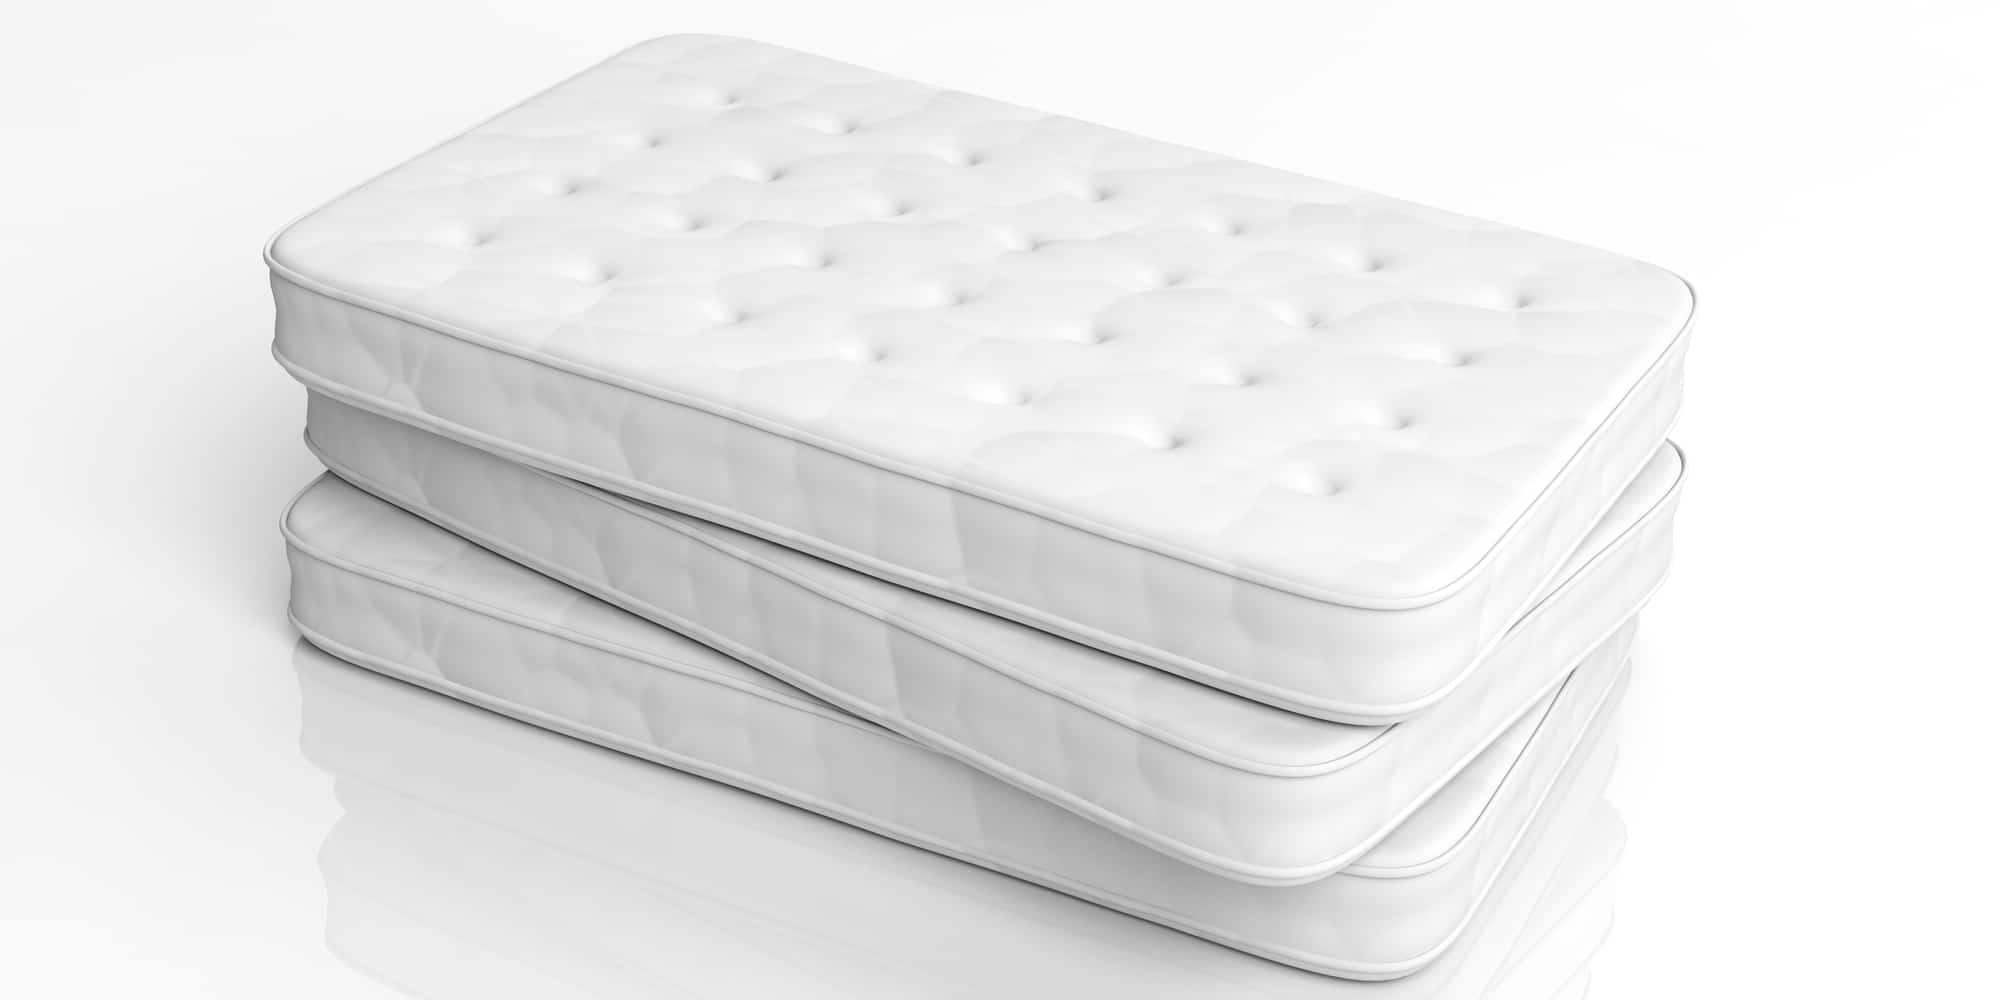 Characteristics Of One Sided Vs Two Sided Mattresses